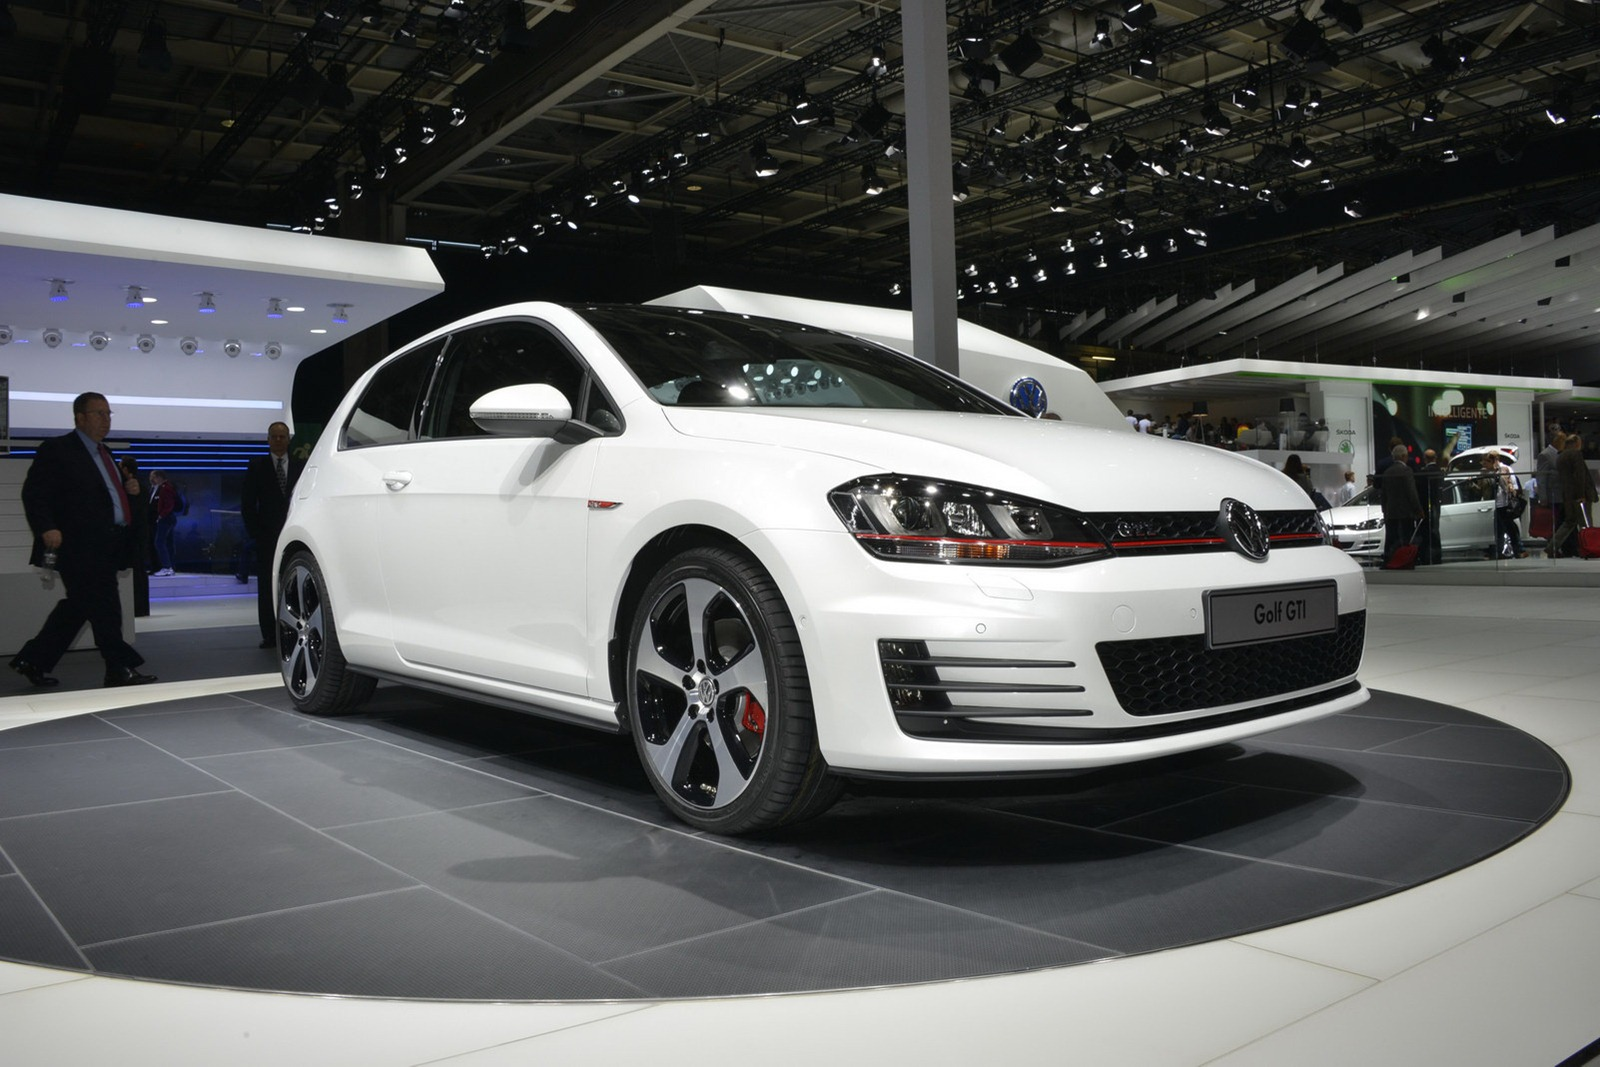 volkswagen golf gti 2013 tecnolog a lujo y potencia lista de carros. Black Bedroom Furniture Sets. Home Design Ideas